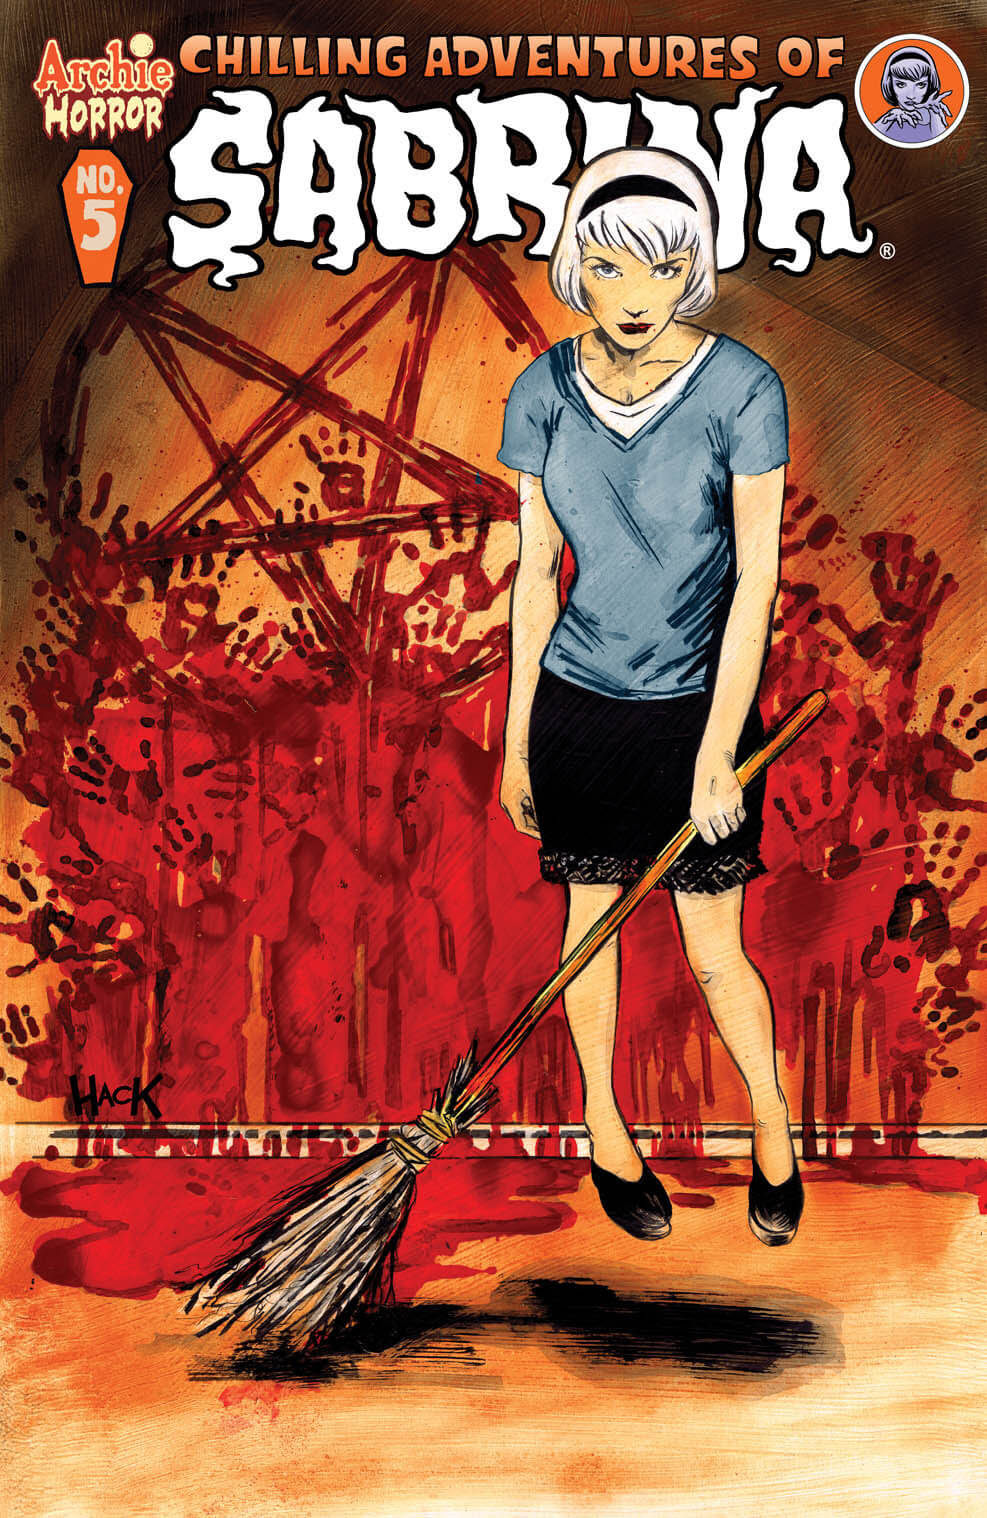 CHILLING ADVENTURES OF SABRINA #5 Cover by Robert Hack - On Sale 5/18